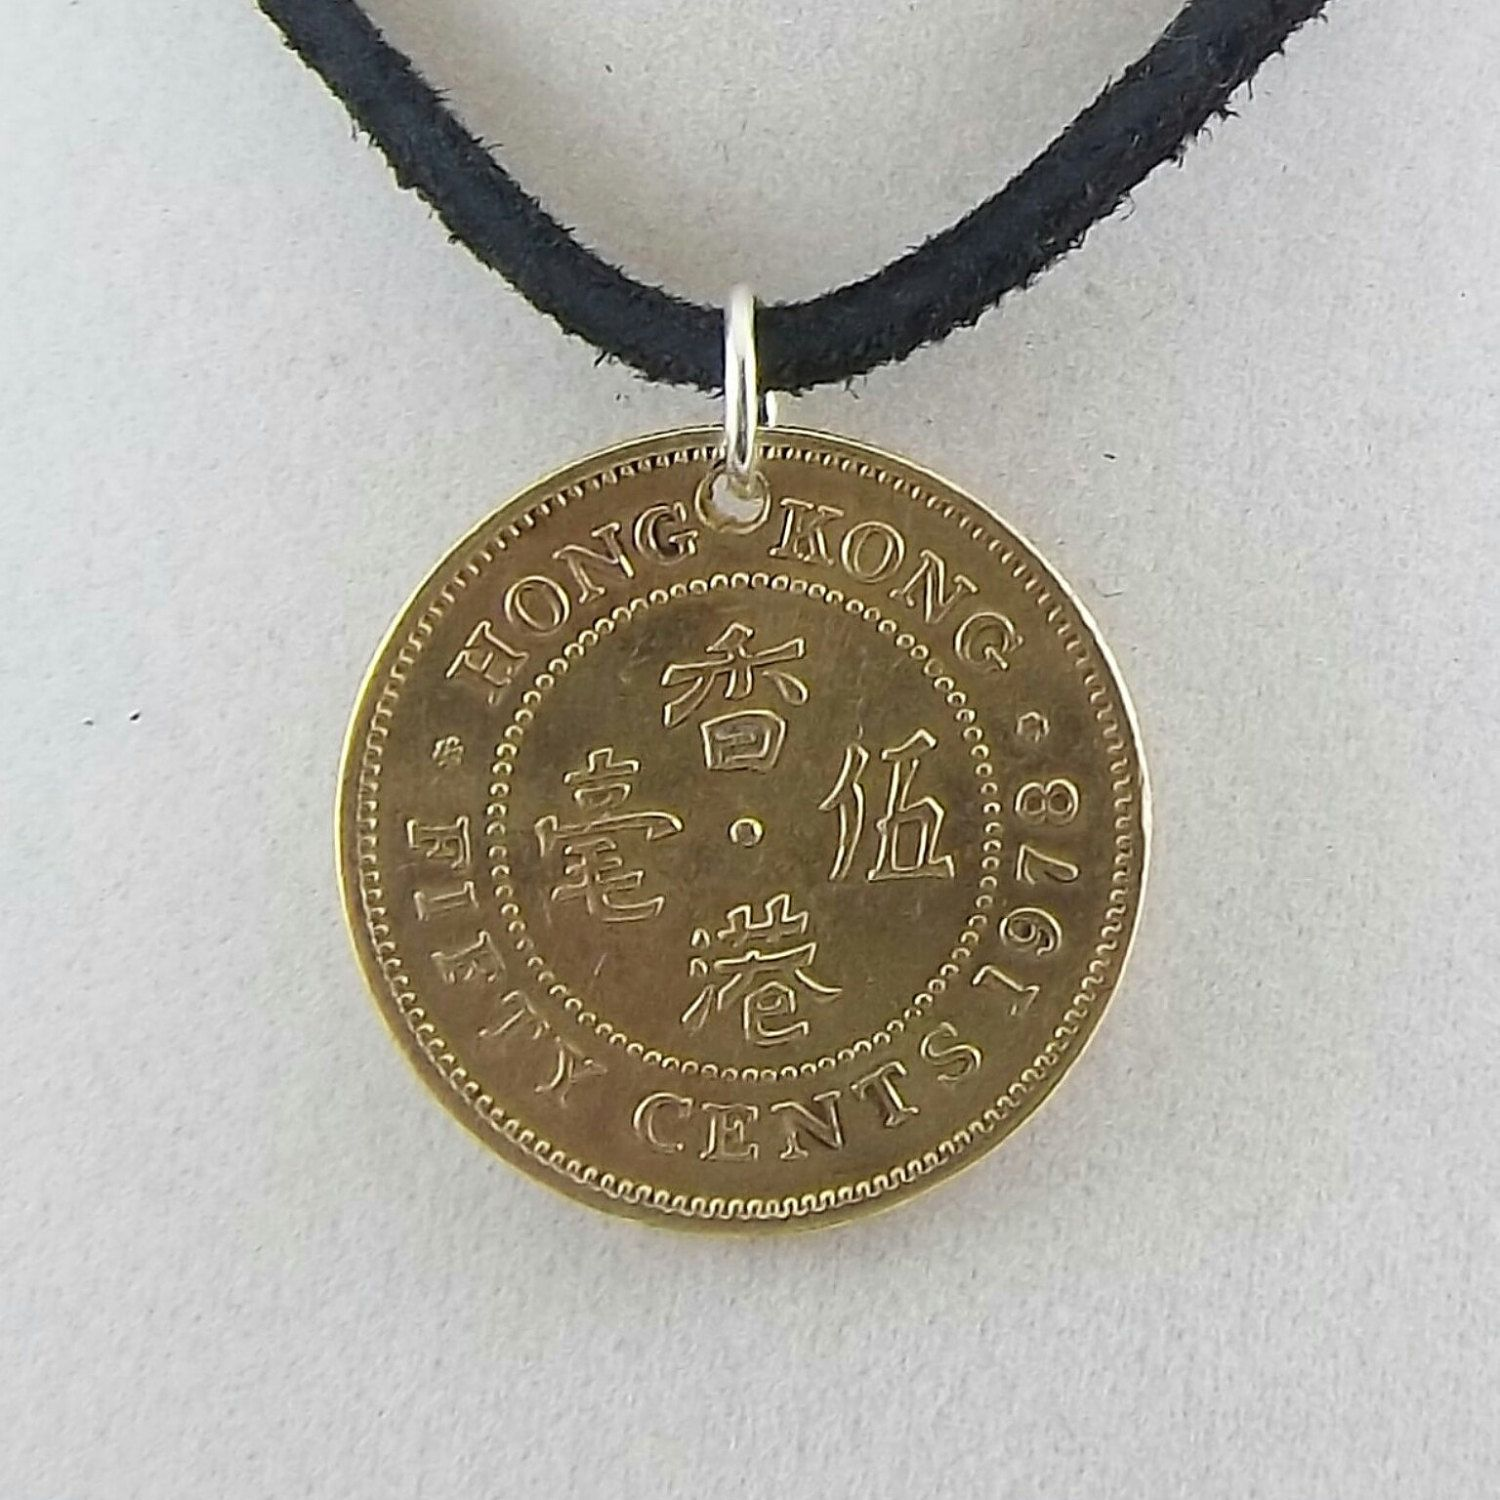 Autumnwindsjewelry Shared A New Photo On Etsy Jewelry Making Queen Elizabeth Ii Coin Etsy